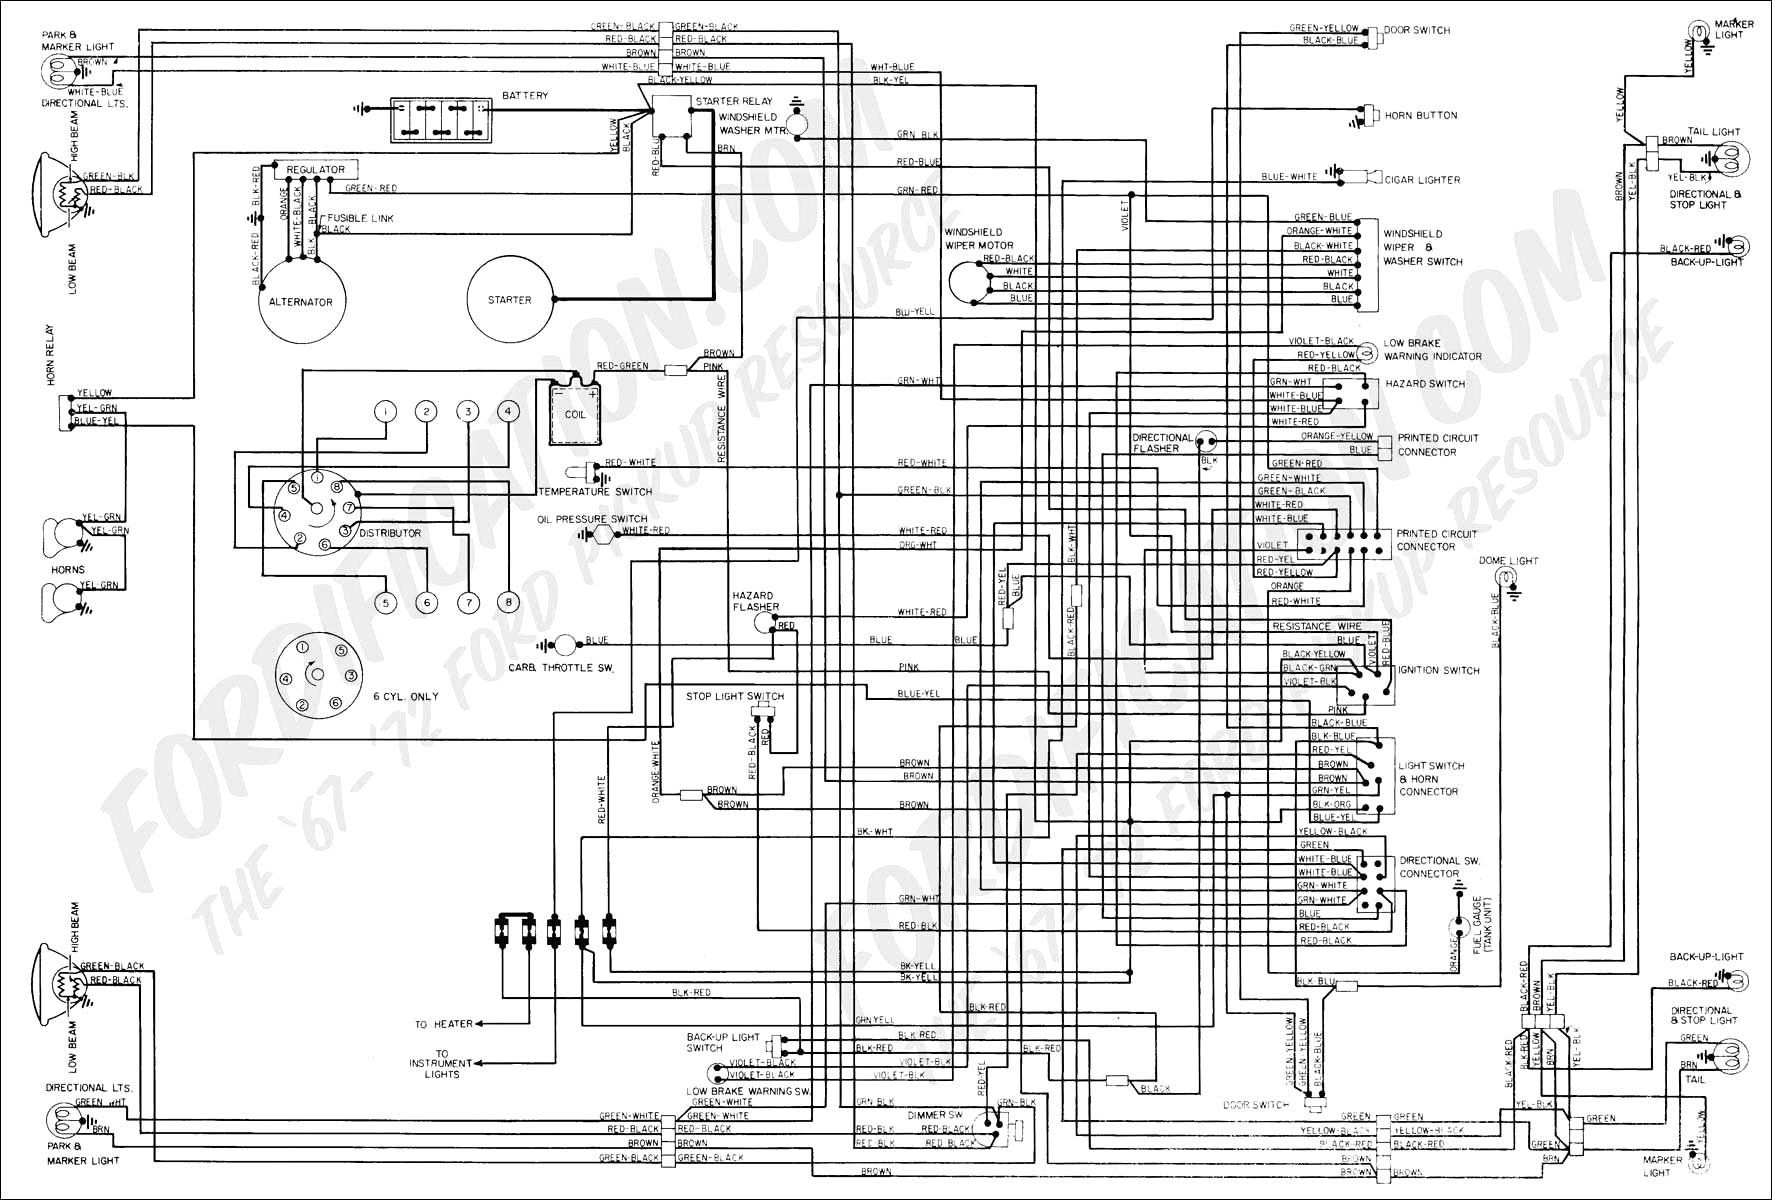 2006 Ford F350 Wiring Diagram Data Wiring Diagrams With Ford F250 Wiring Diagram Ford Courier Electrical Wiring Diagram Ford F250